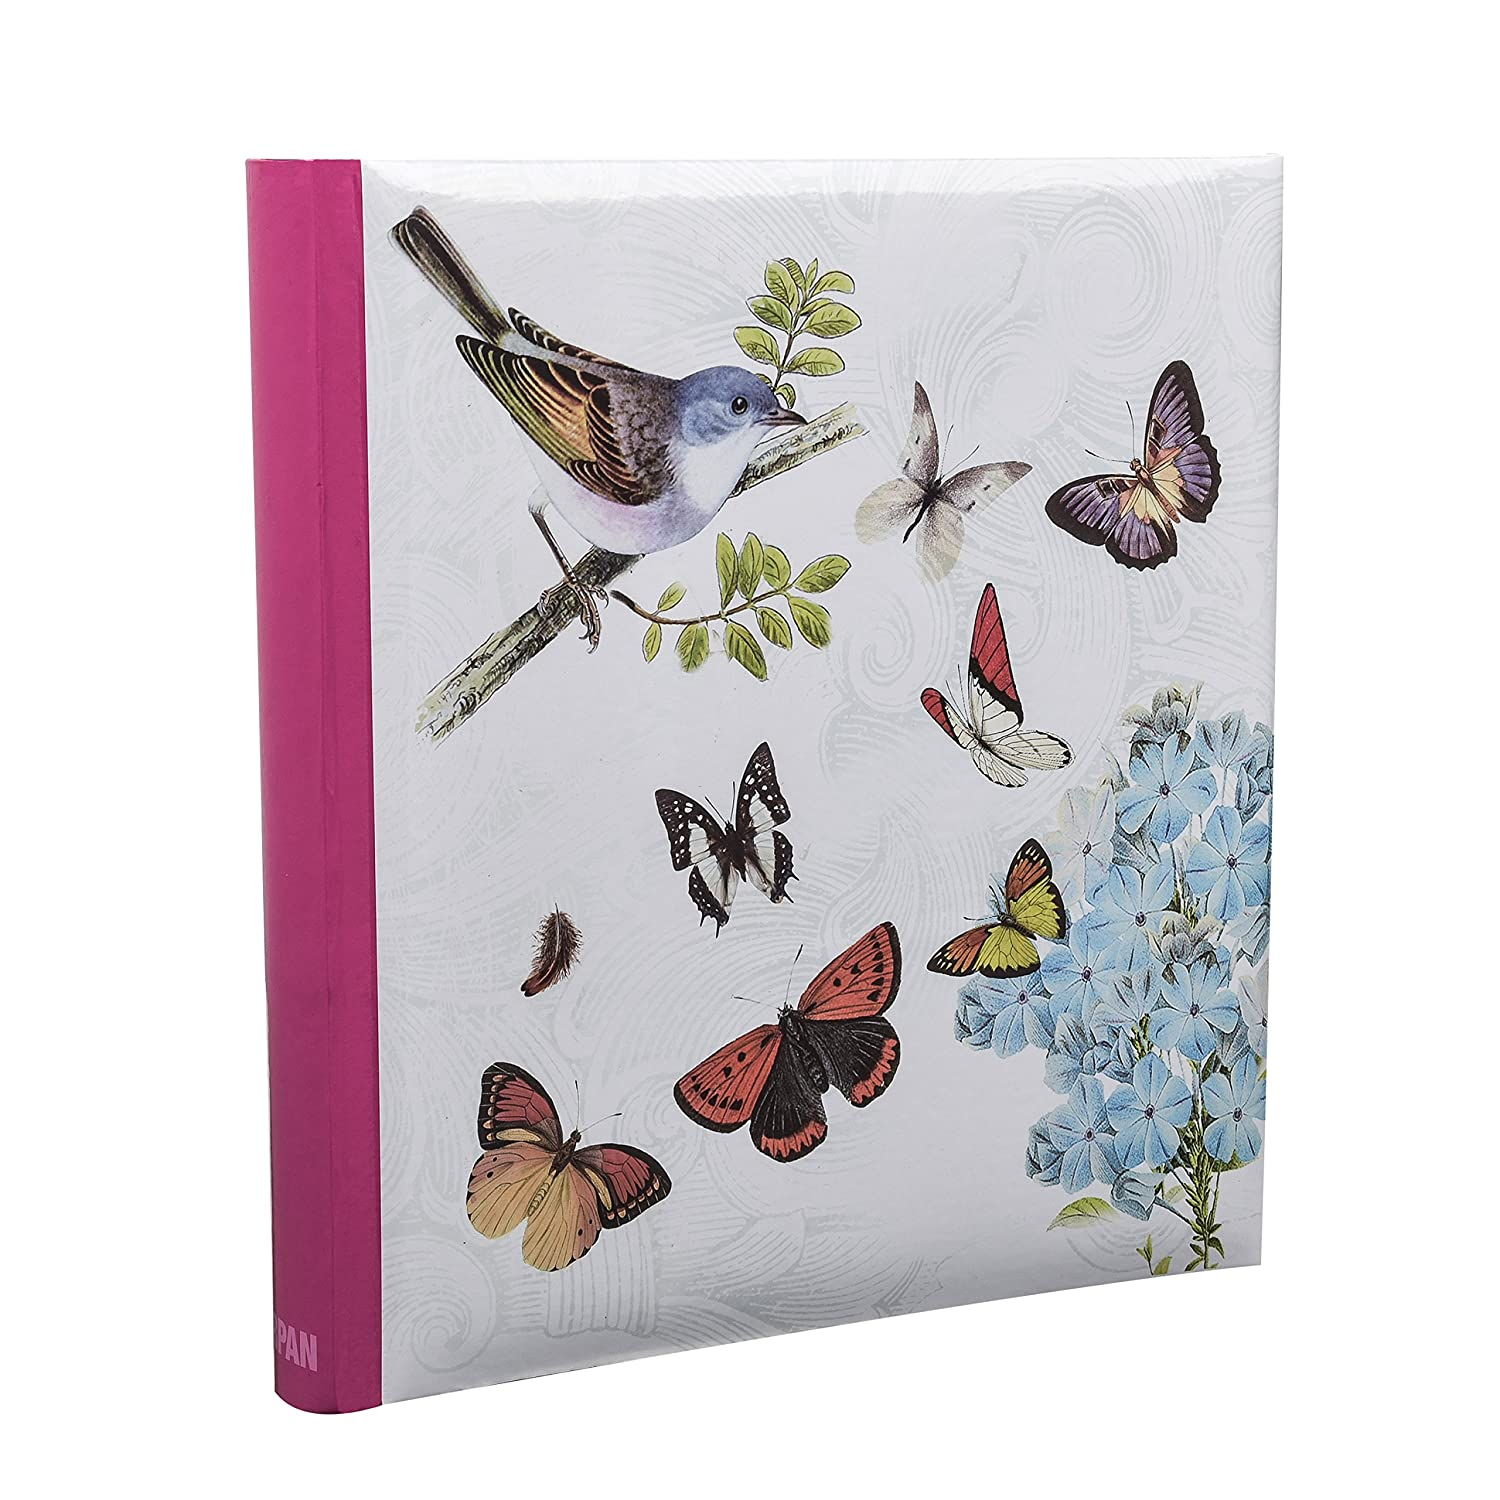 Arpan 5 x 7'' Large Slip In Memo Photo Album For 200 Holds Ideal Gift x 1 (Cream Butterfly Bird) BB57